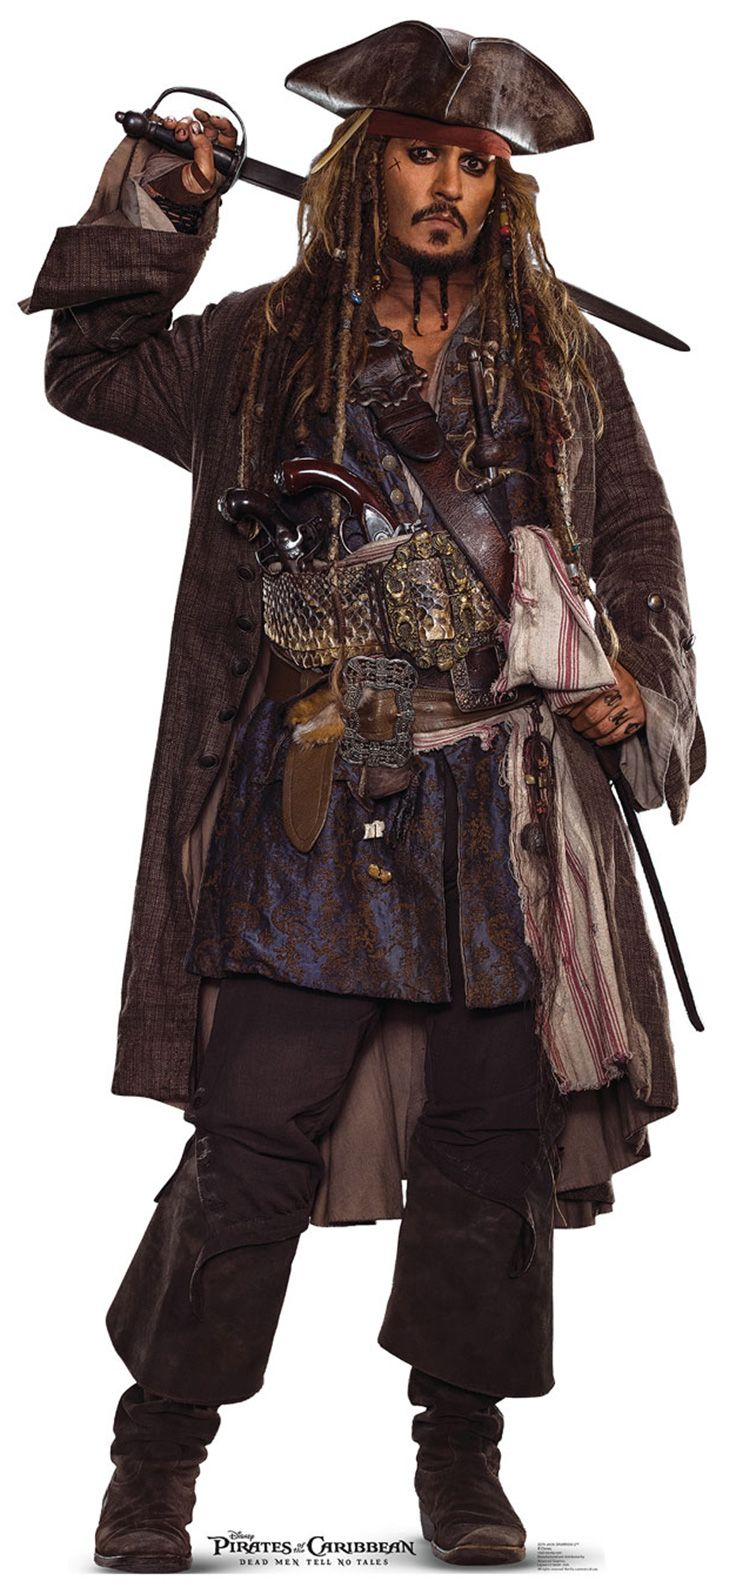 "CAPTAIN JACK SPARROW Cardboard Cutout Standup / Standee from ""Pirates of the Caribbean: Dead Men Tell No Tales (2017)"" 